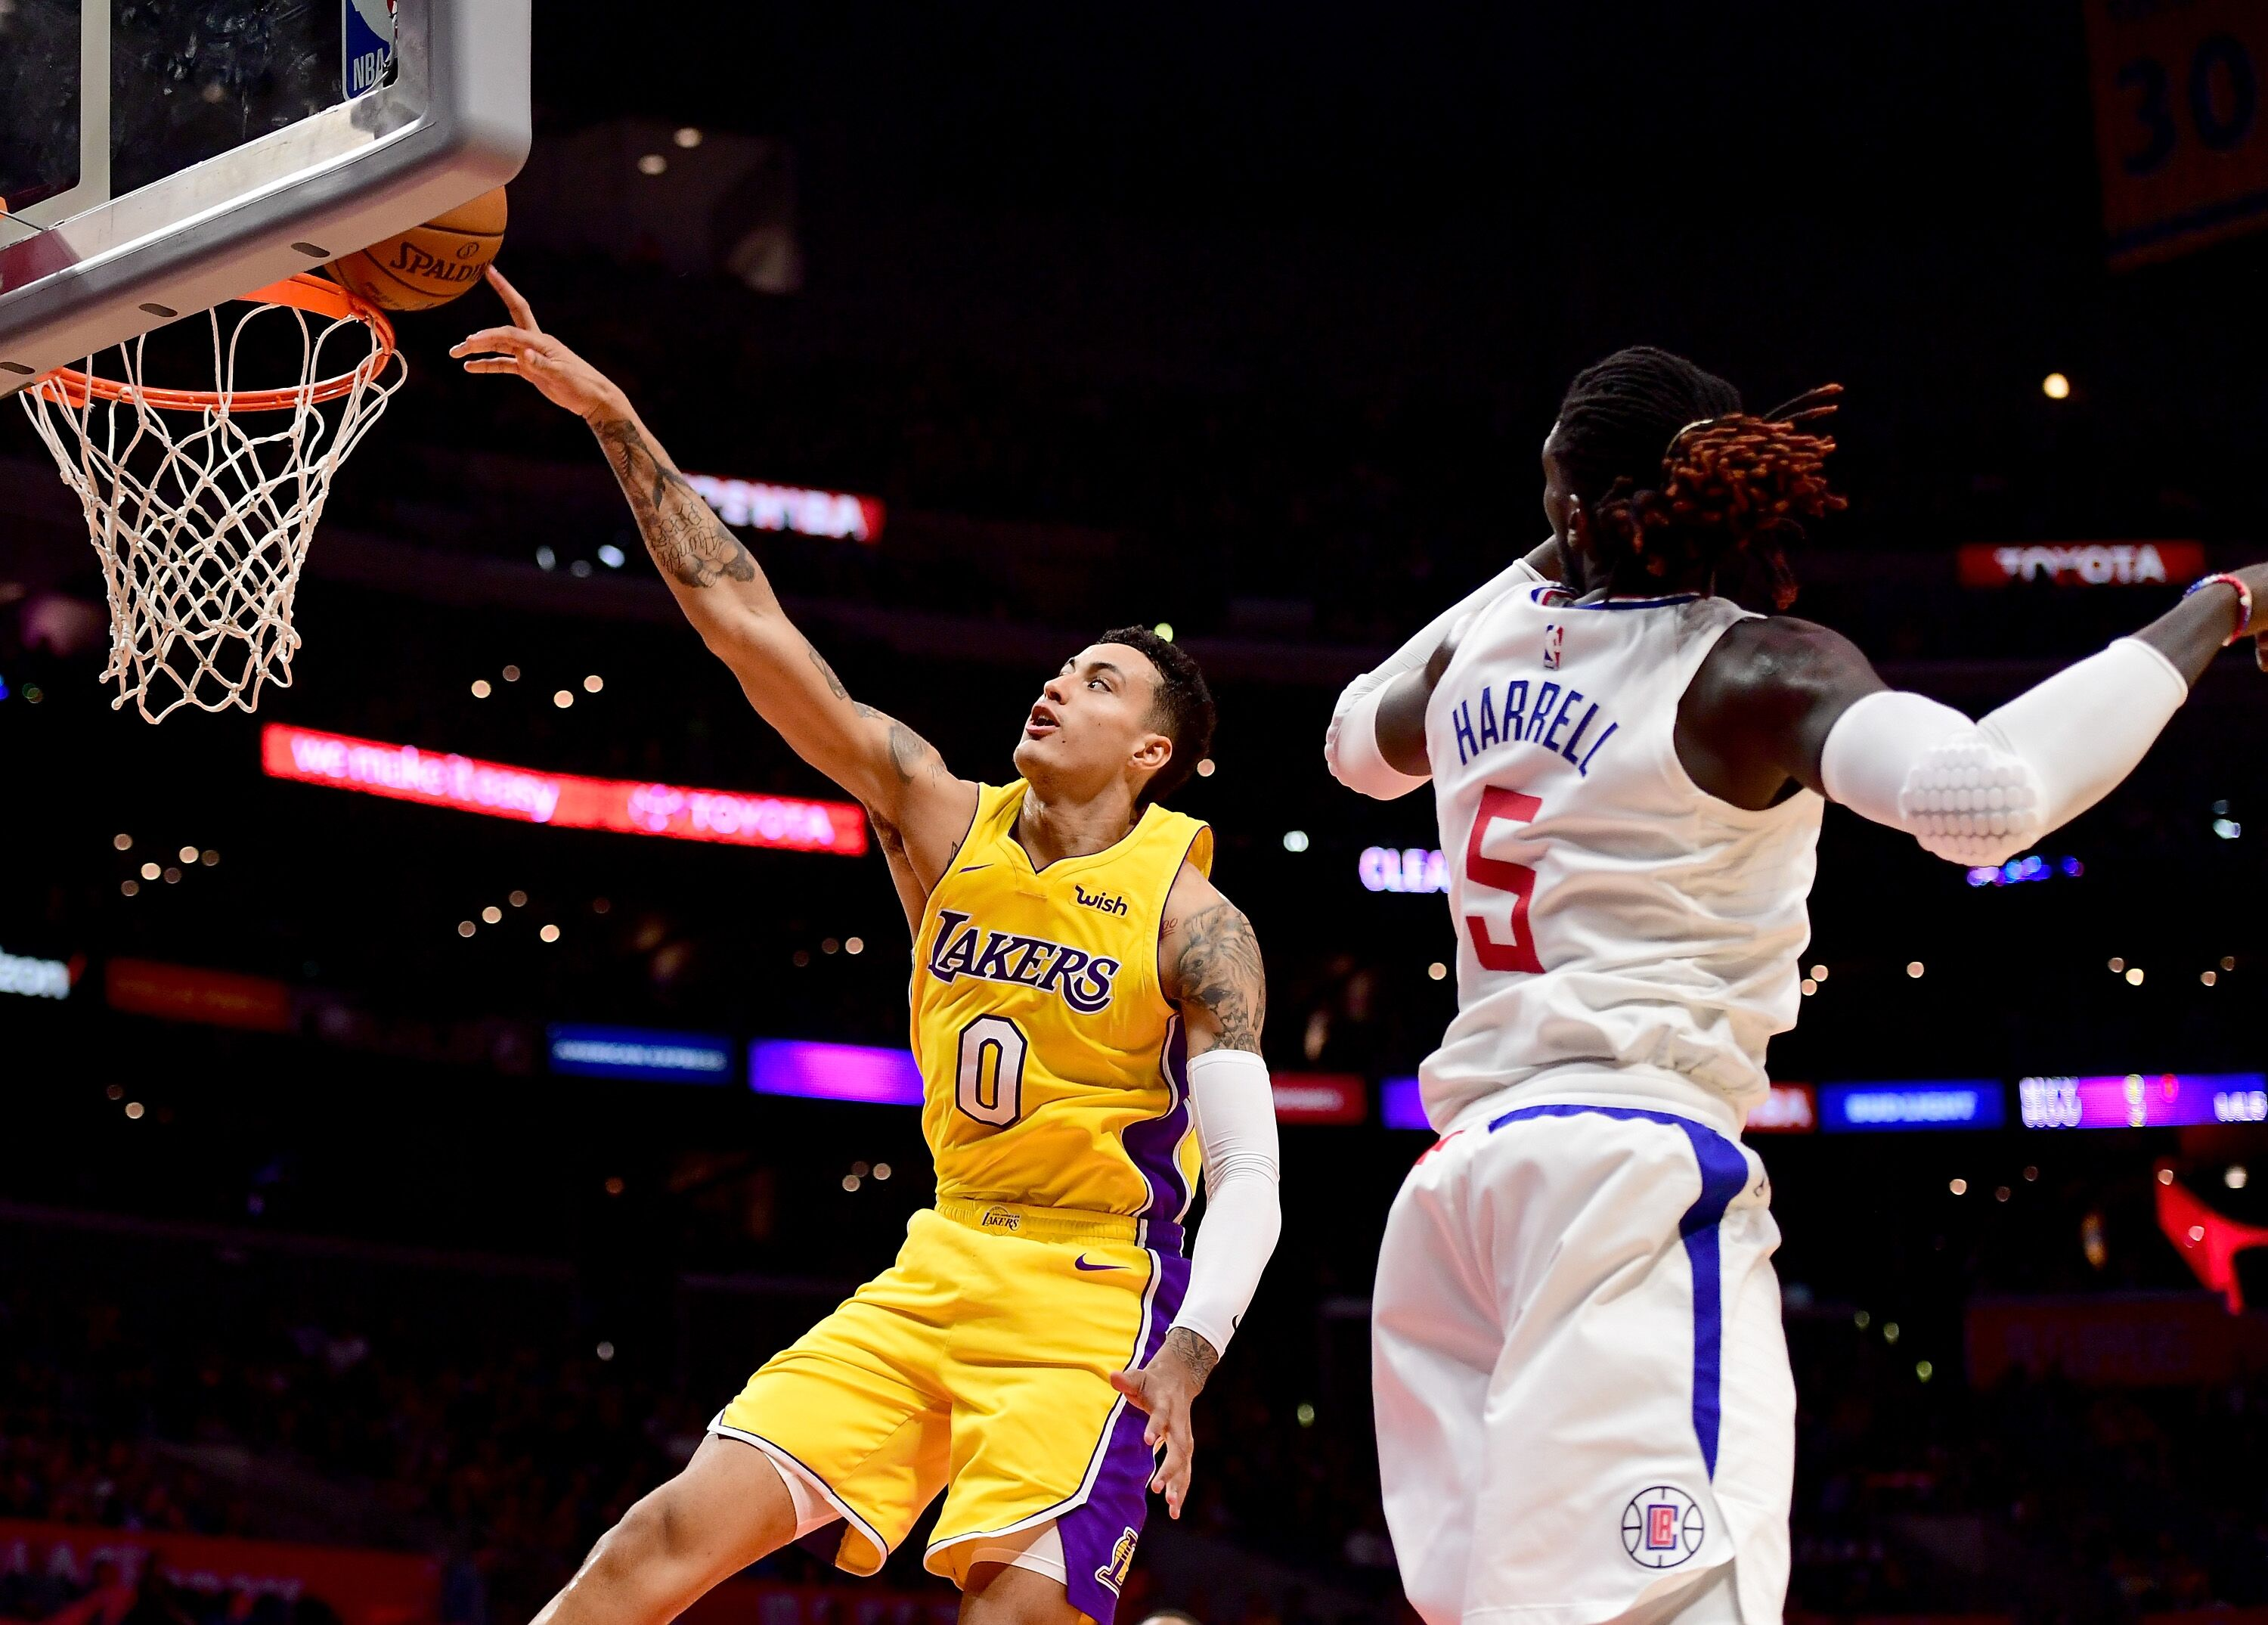 861085214-los-angeles-lakers-v-los-angeles-clippers.jpg